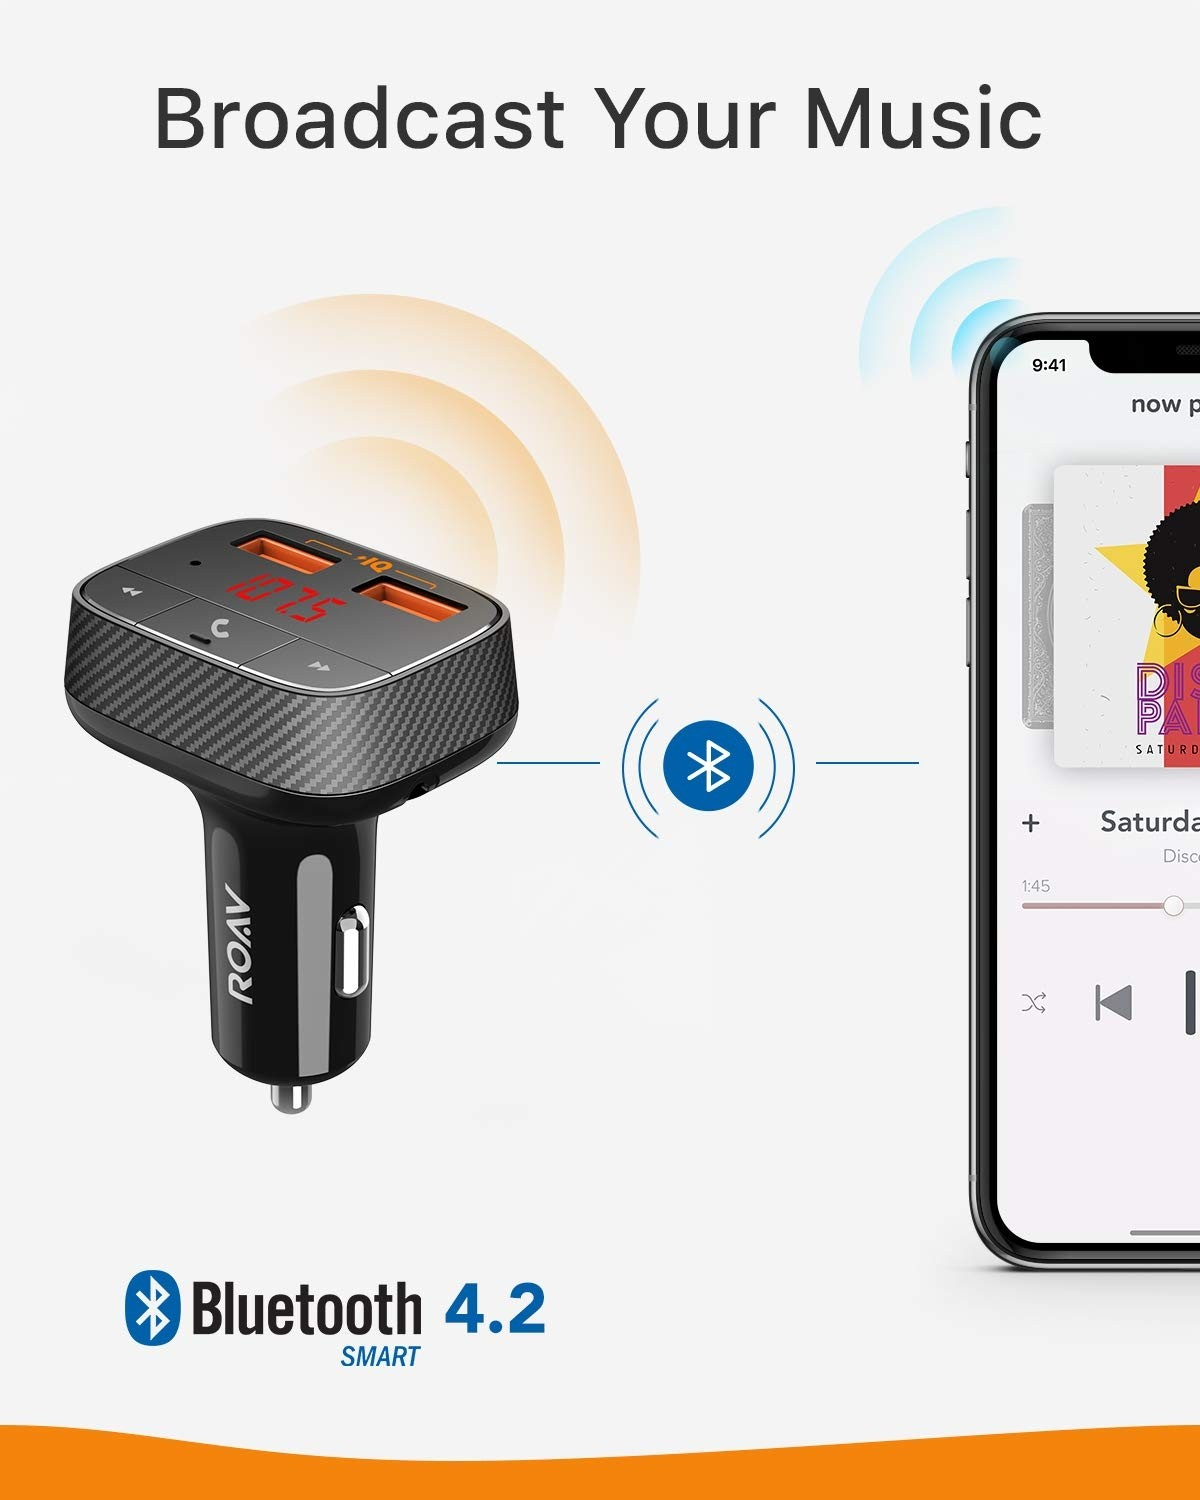 Roav SmartCharge F0, by Anker, FM Transmitter/Bluetooth Receiver/Car Charger with Bluetooth 4.2, 2 USB Ports, PowerIQ, and AUX Output, AK-R5113112